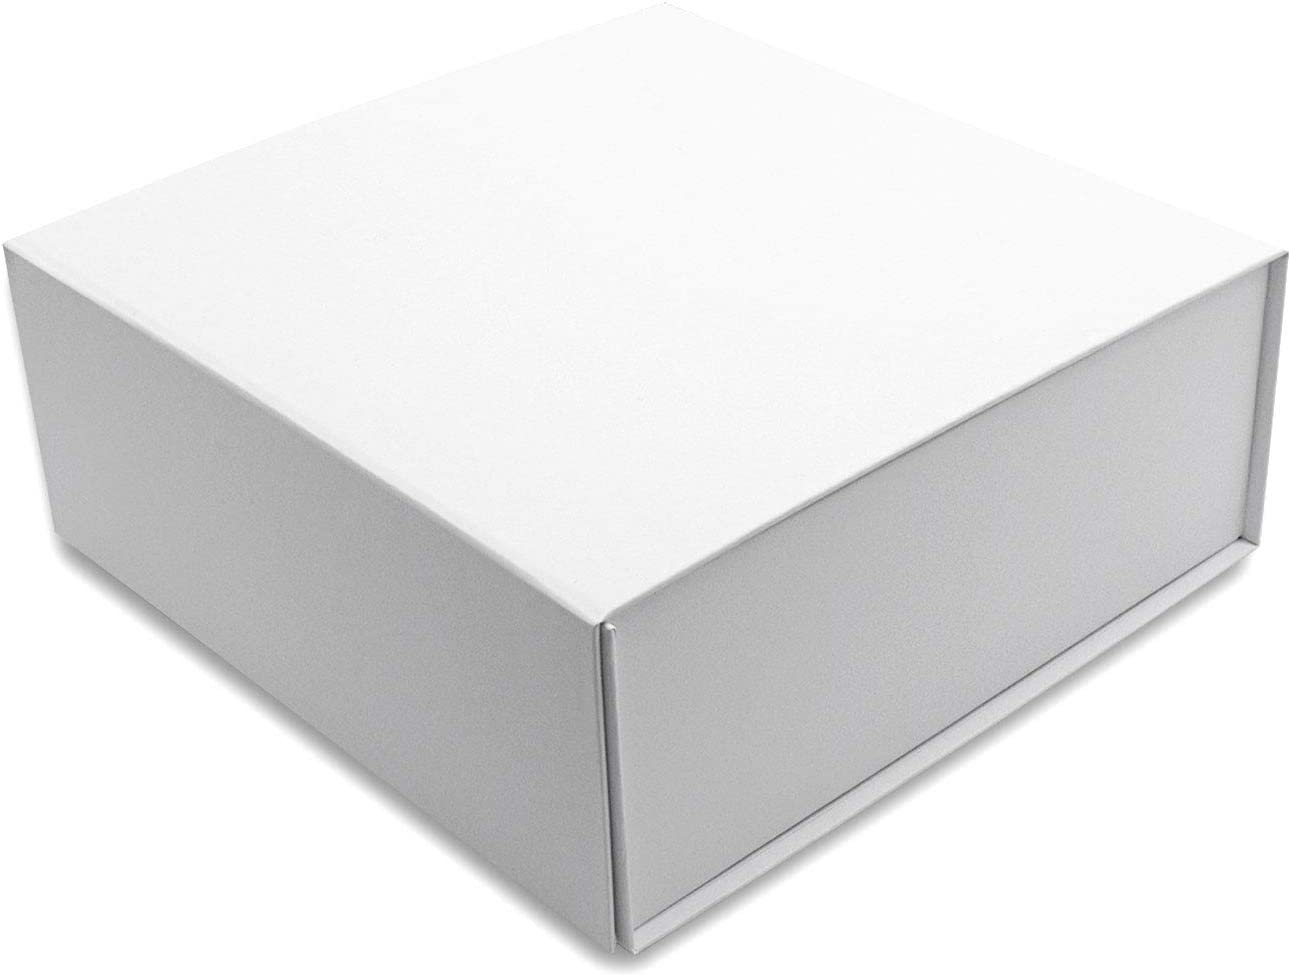 White Gift Box with Lid, Collapsible with Magnetic Flap Closure, Hard Paperboard with Matte Finish, Designer Quality for Gifts, Presentations, Bridesmaids, Groomsmen, Retail, Apparel - 9.4x9.4x3.7